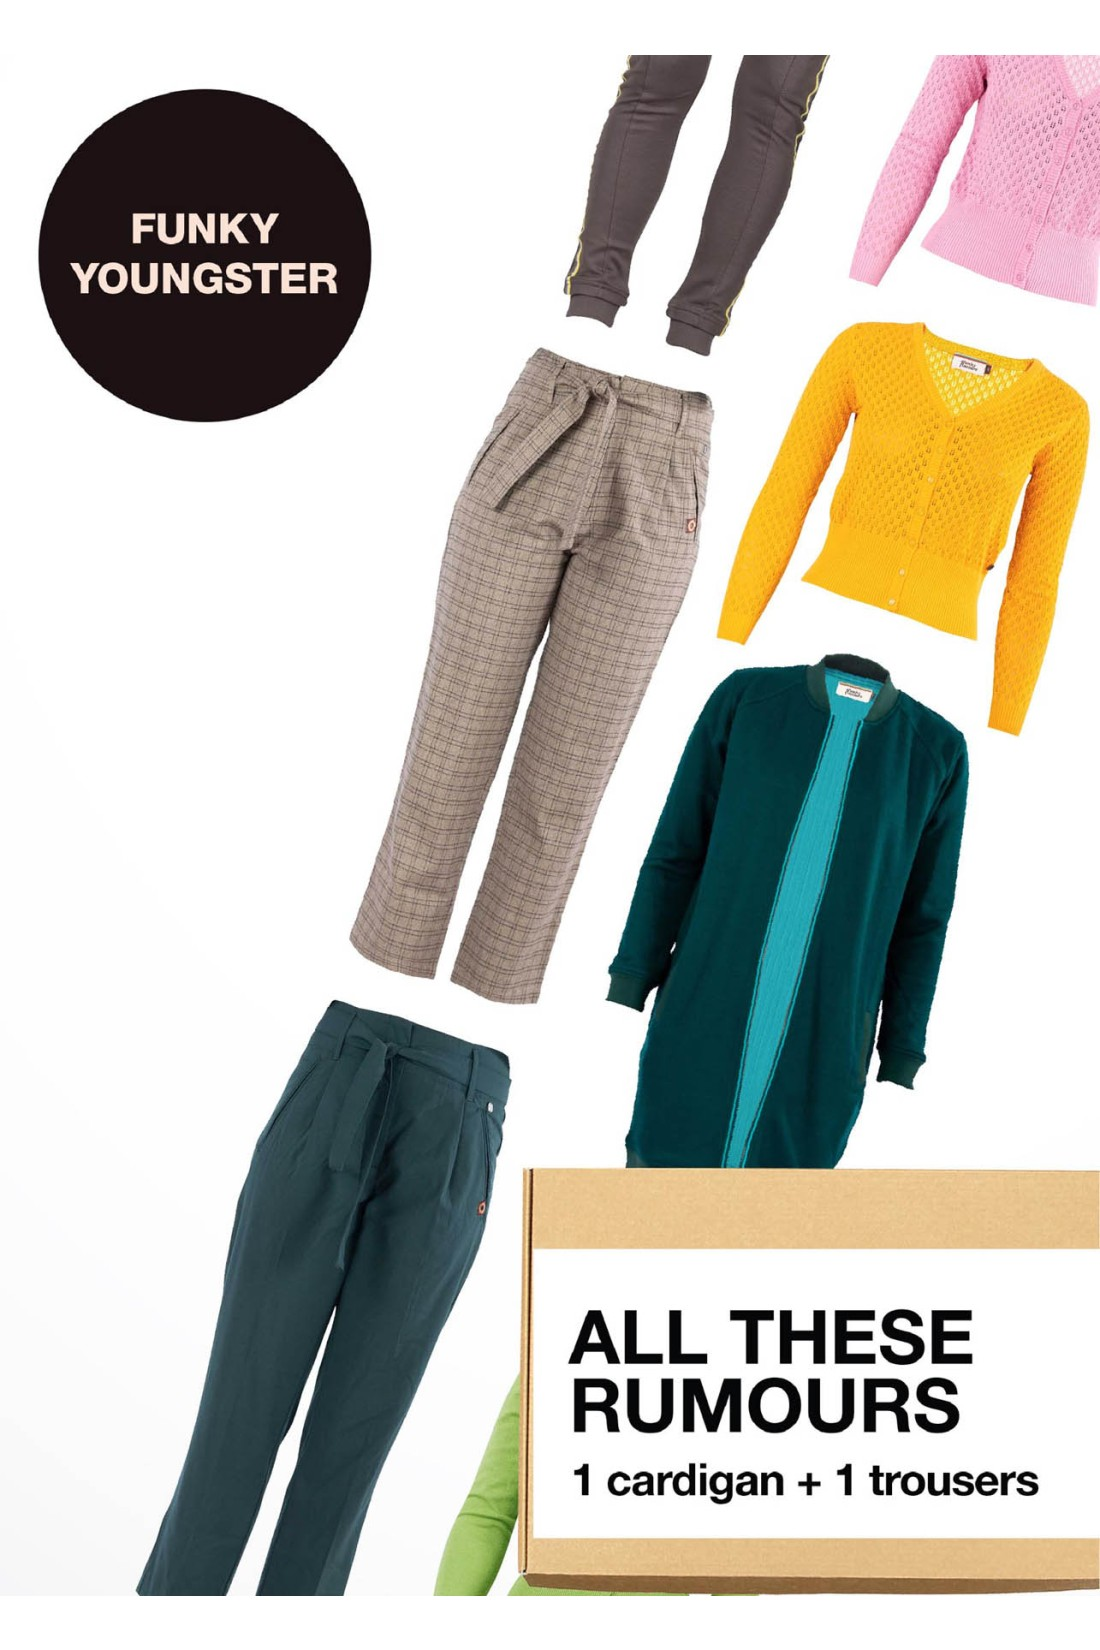 Surprise Box FUNKY YOUNGSTER - ALL THESE RUMOURS - 2 Styles XS-S - Cardigan + Trousers